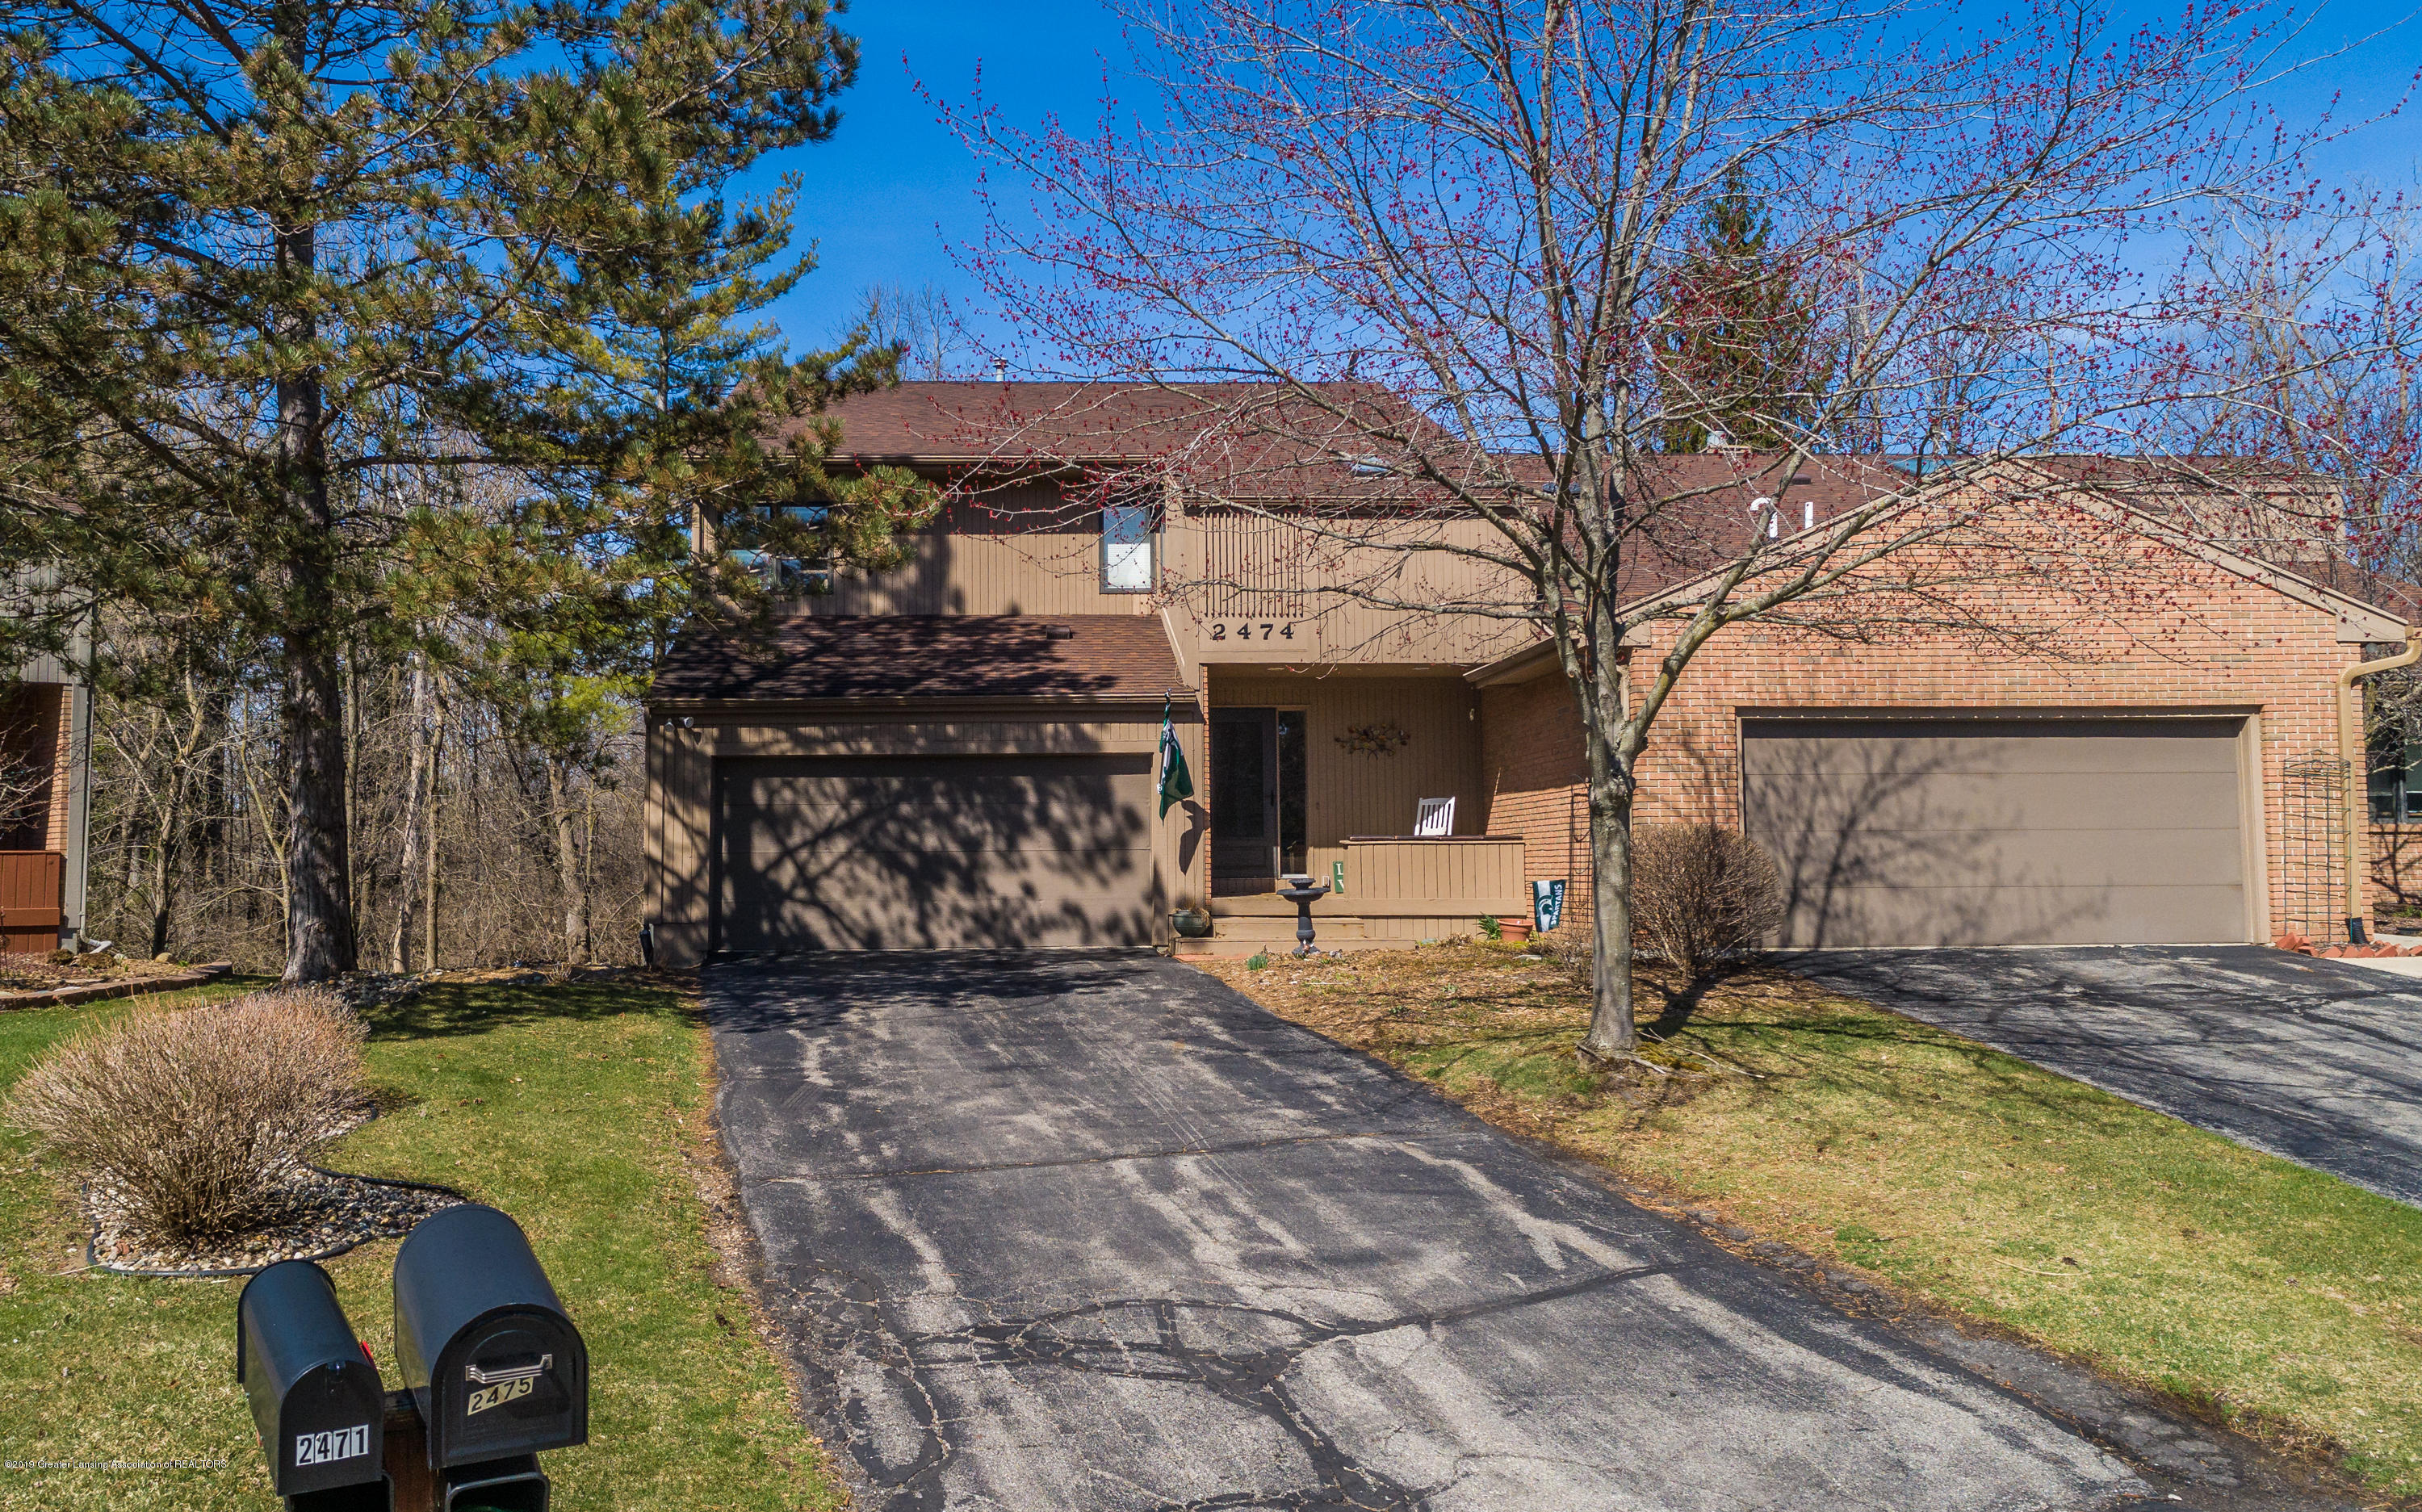 2474 Emerald Lake Dr - EMLL-0201 - 2